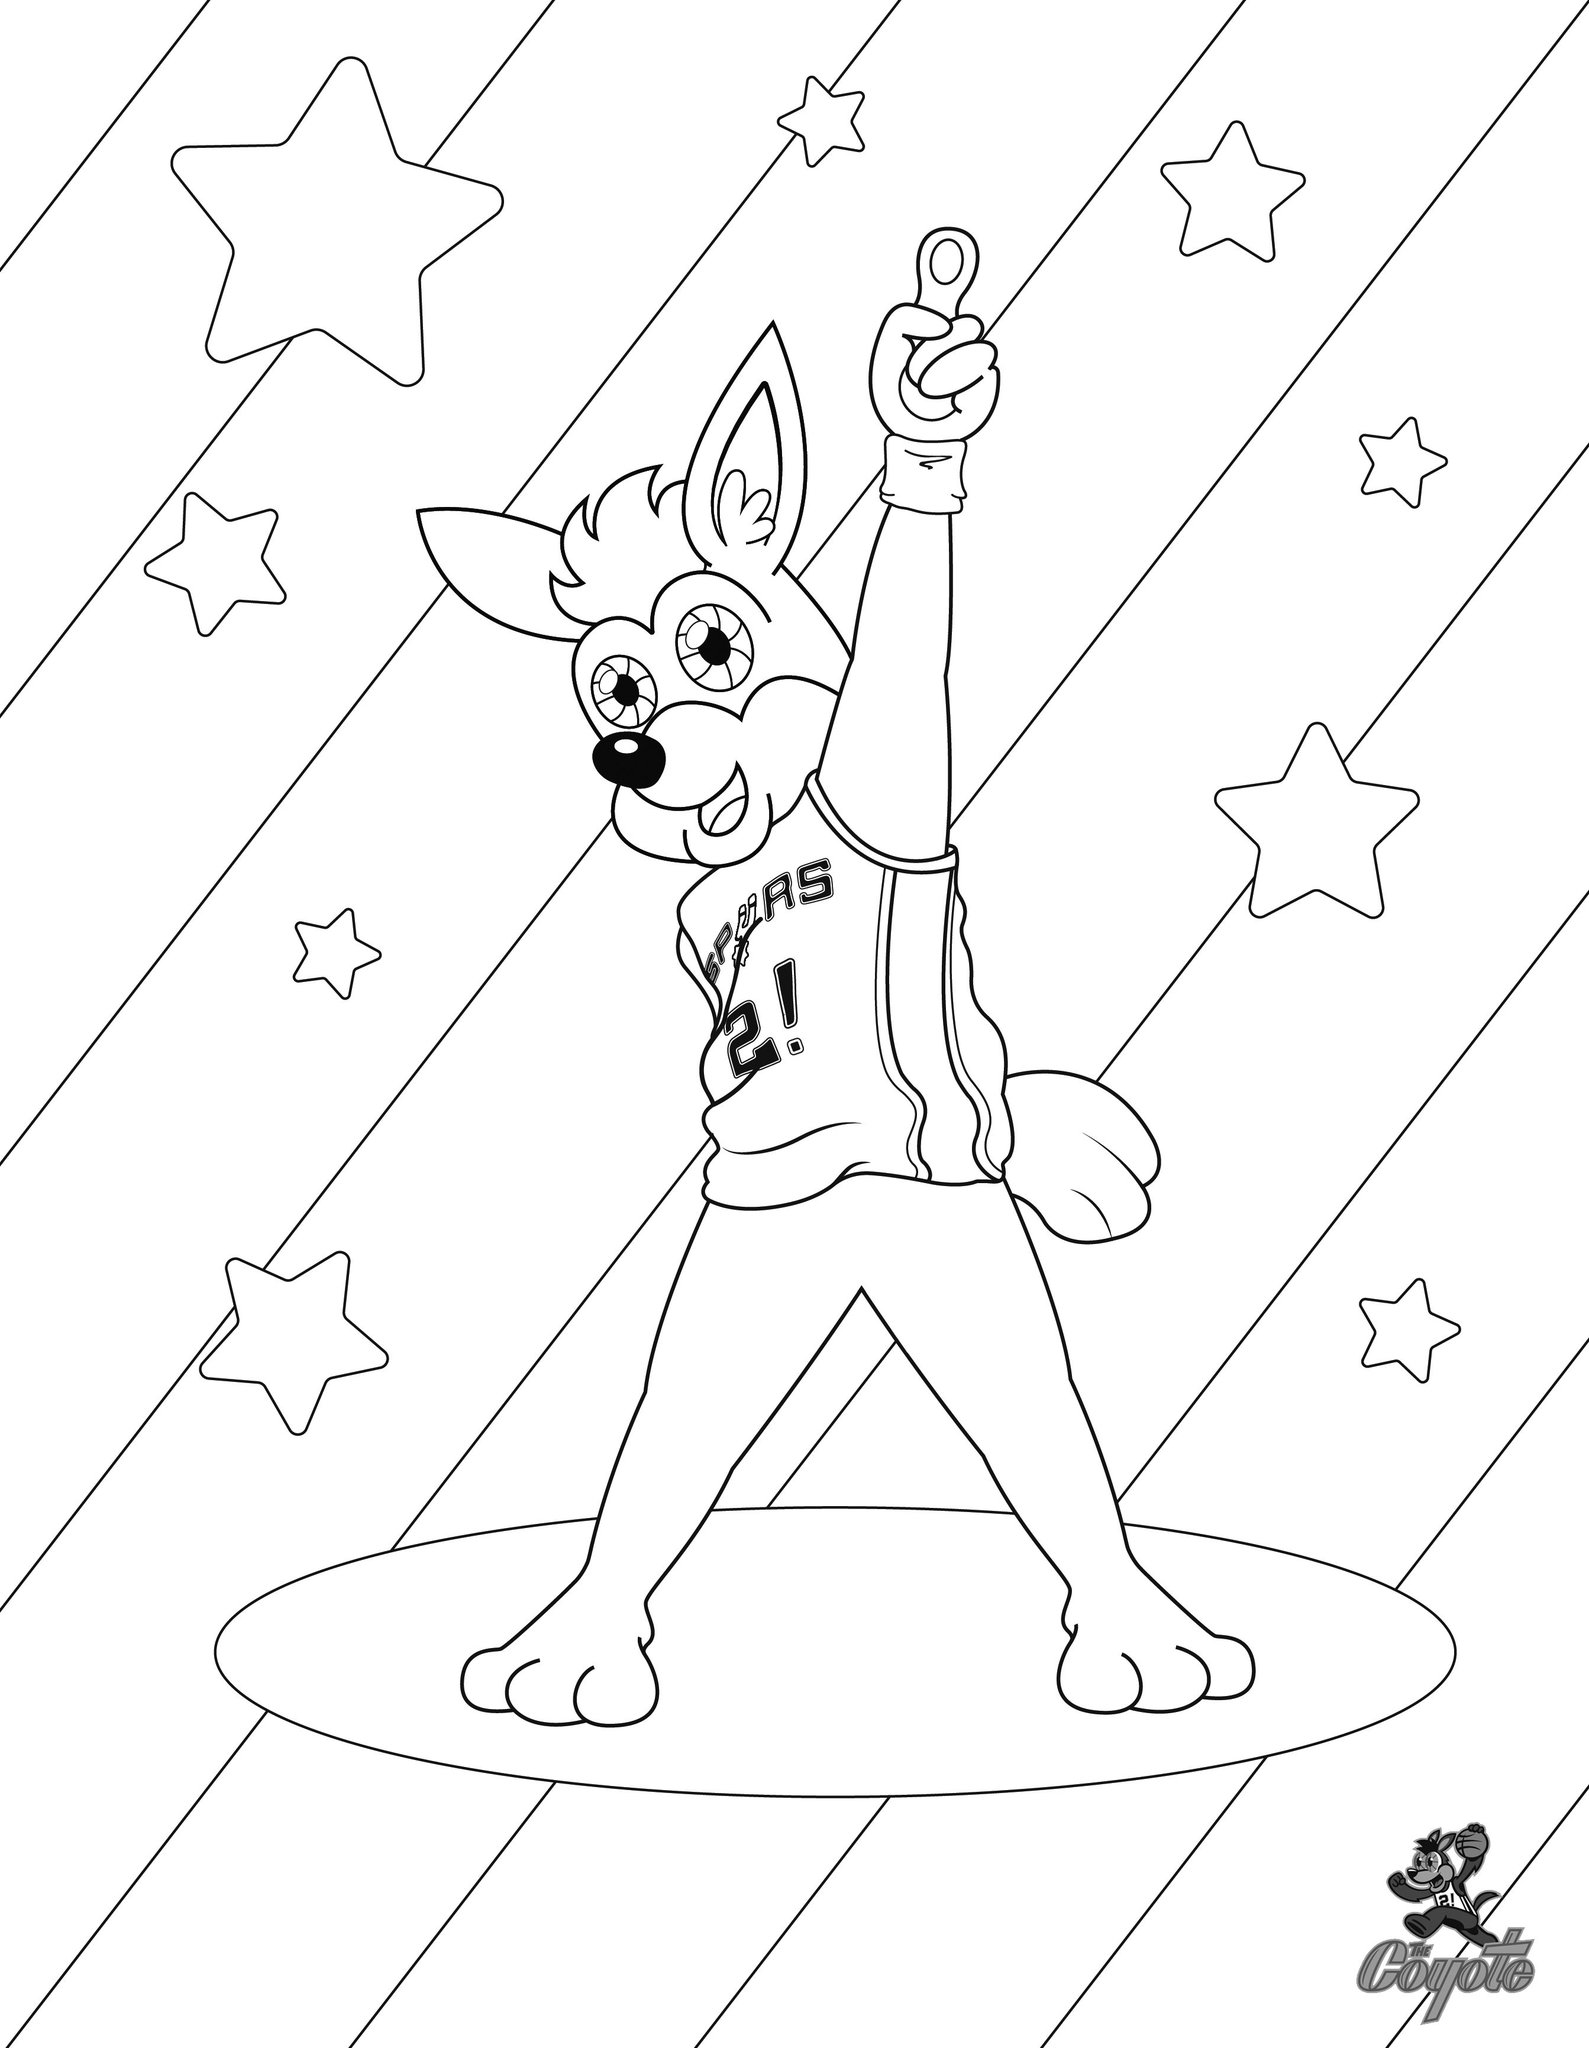 It's #NationalColoringBookDay with @SpursCoyote! ▫️ Save ▪️ Print ▫️ Color ▪️ Share https://t.co/C6bfxVhnqb